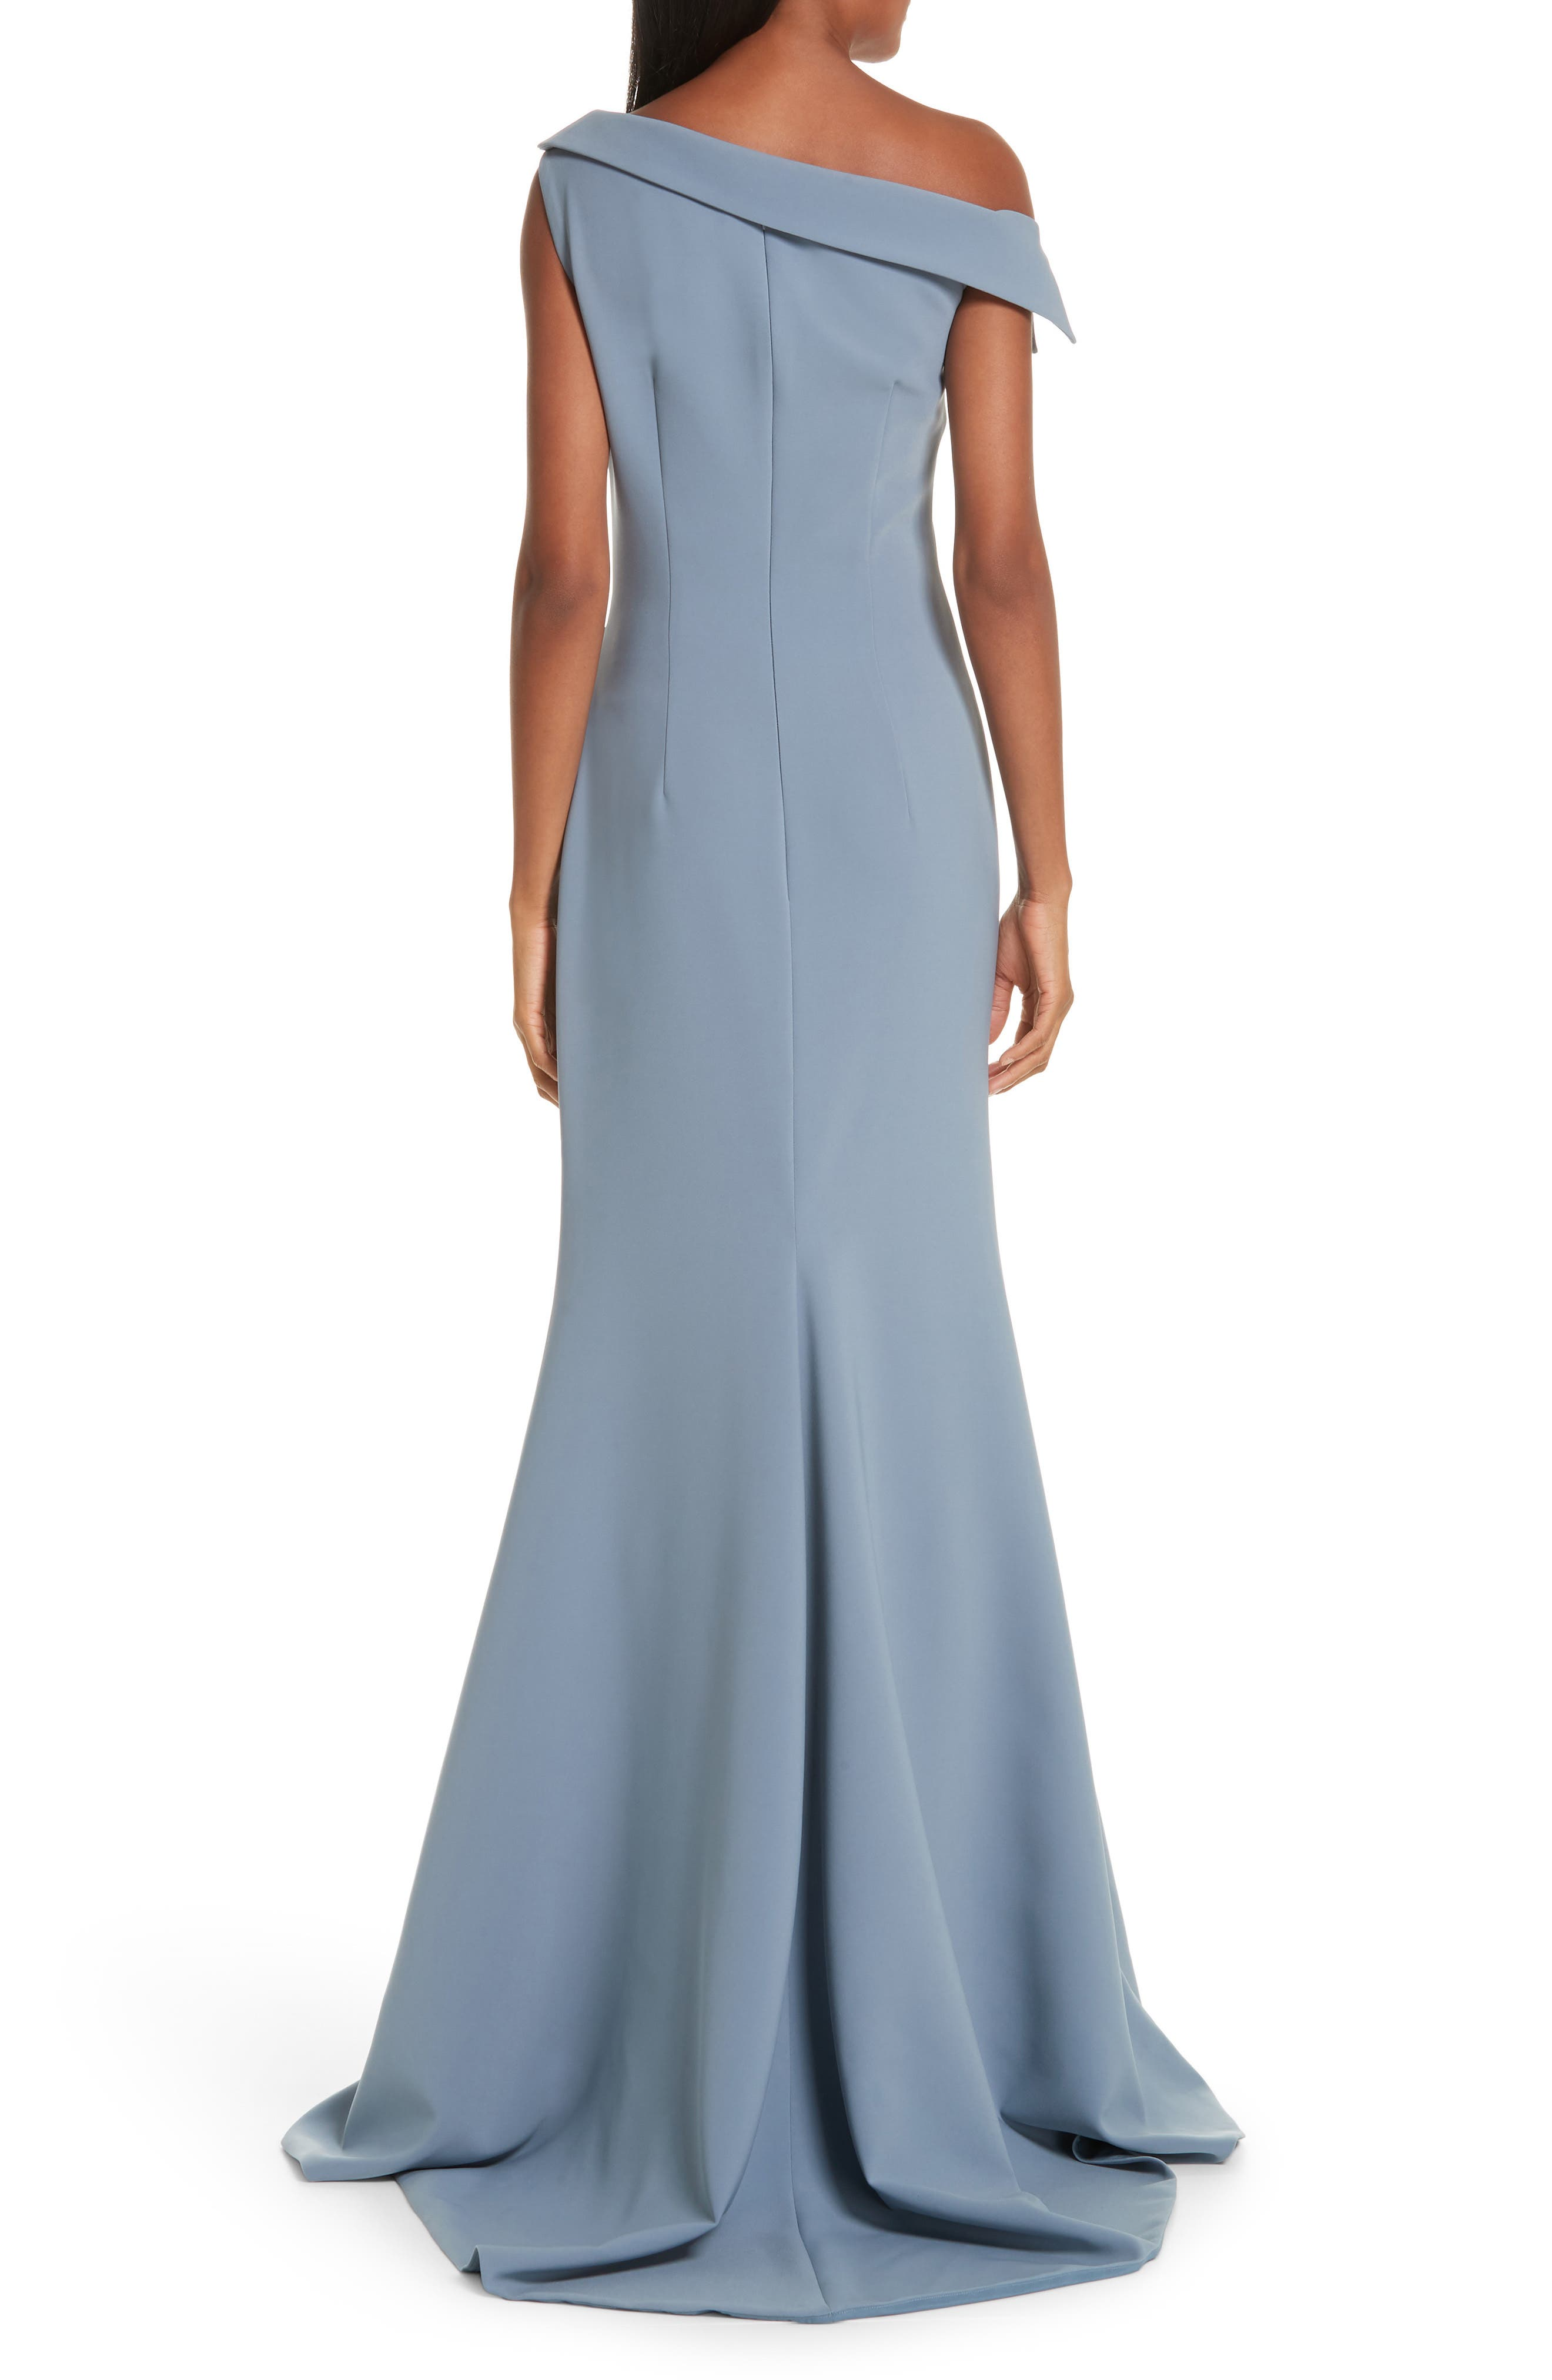 One-Shoulder Evening Dress,                             Alternate thumbnail 2, color,                             SHADOW BLUE